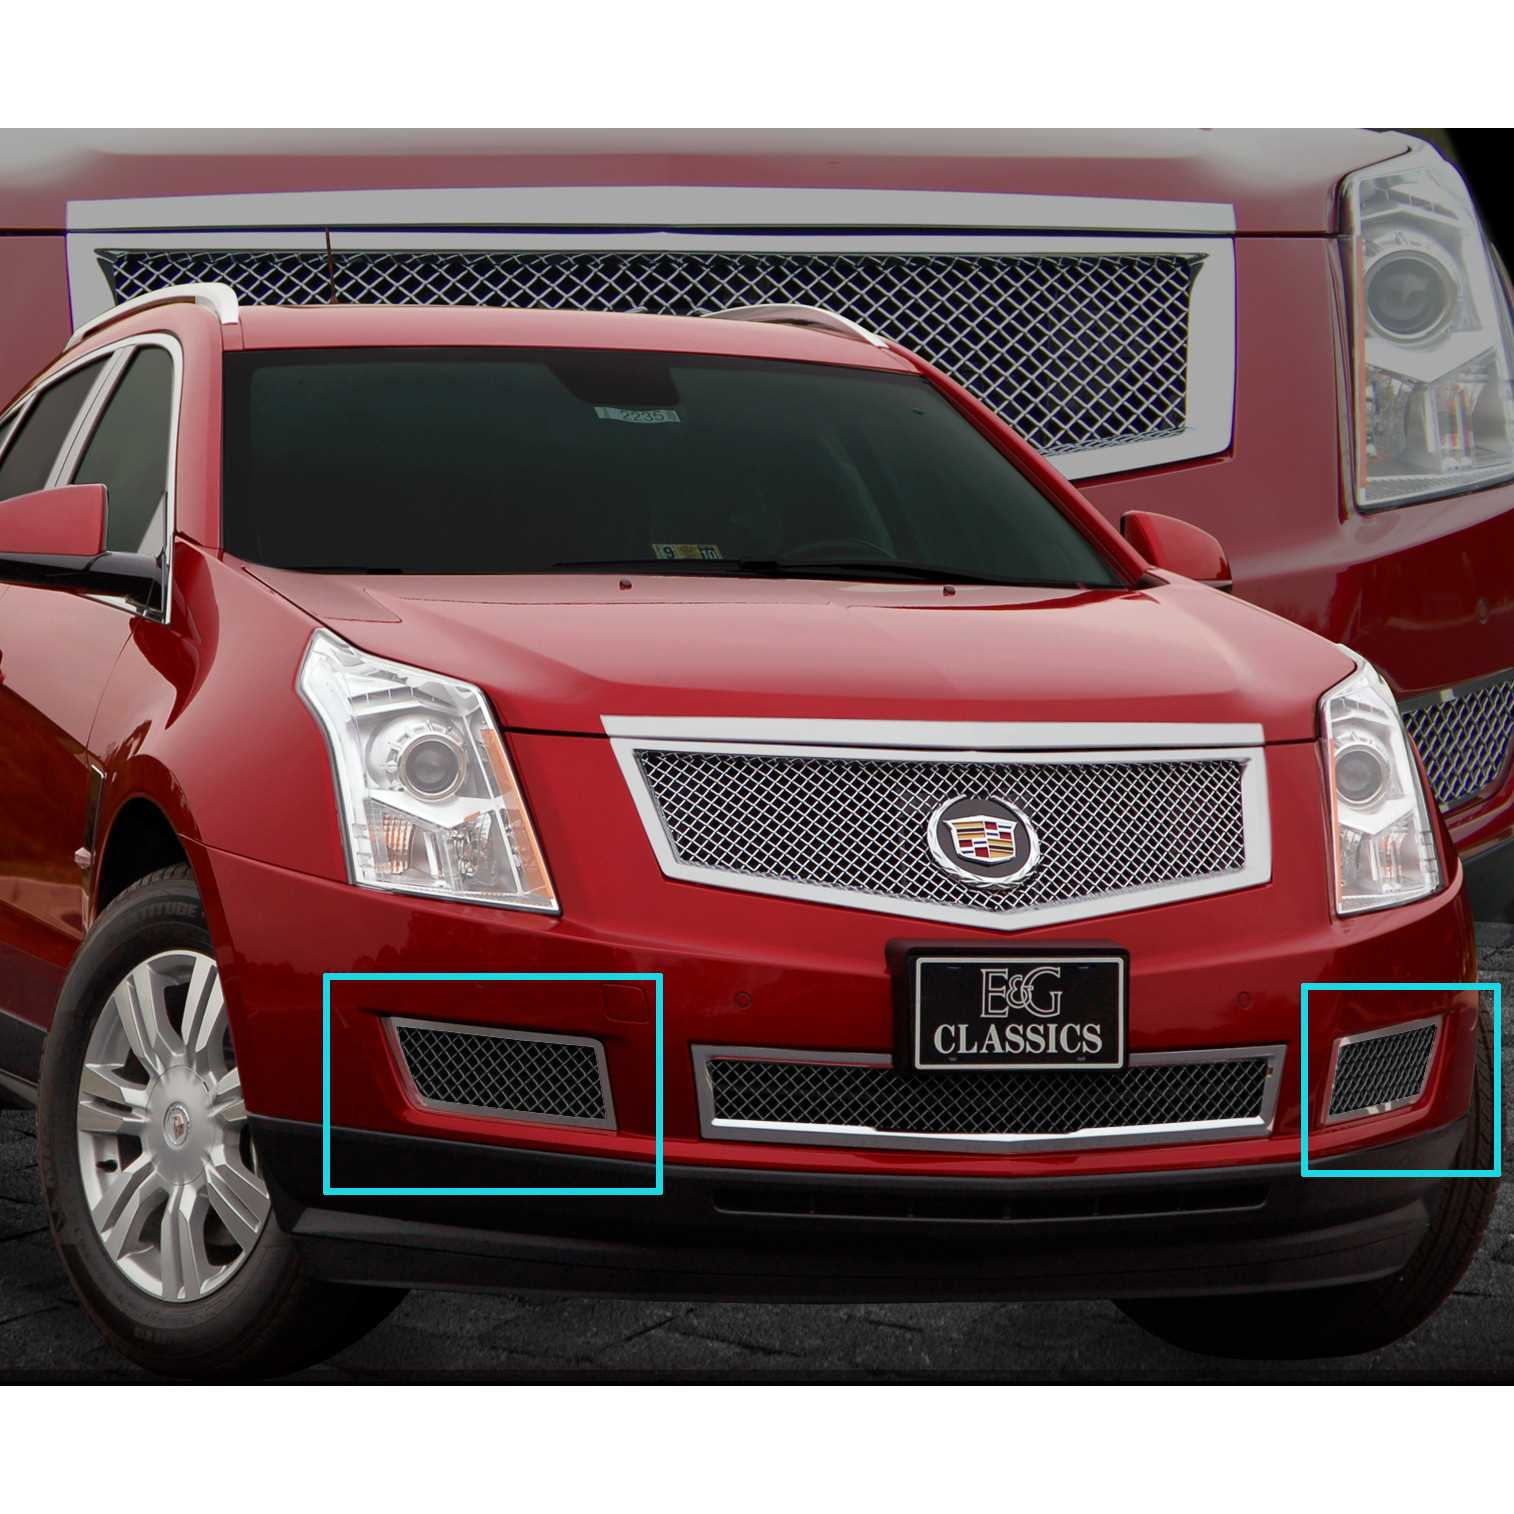 hight resolution of e g classics 2010 2015 cadillac srx accessories front brake duct covers fine mesh black ice 1003 b10w 10